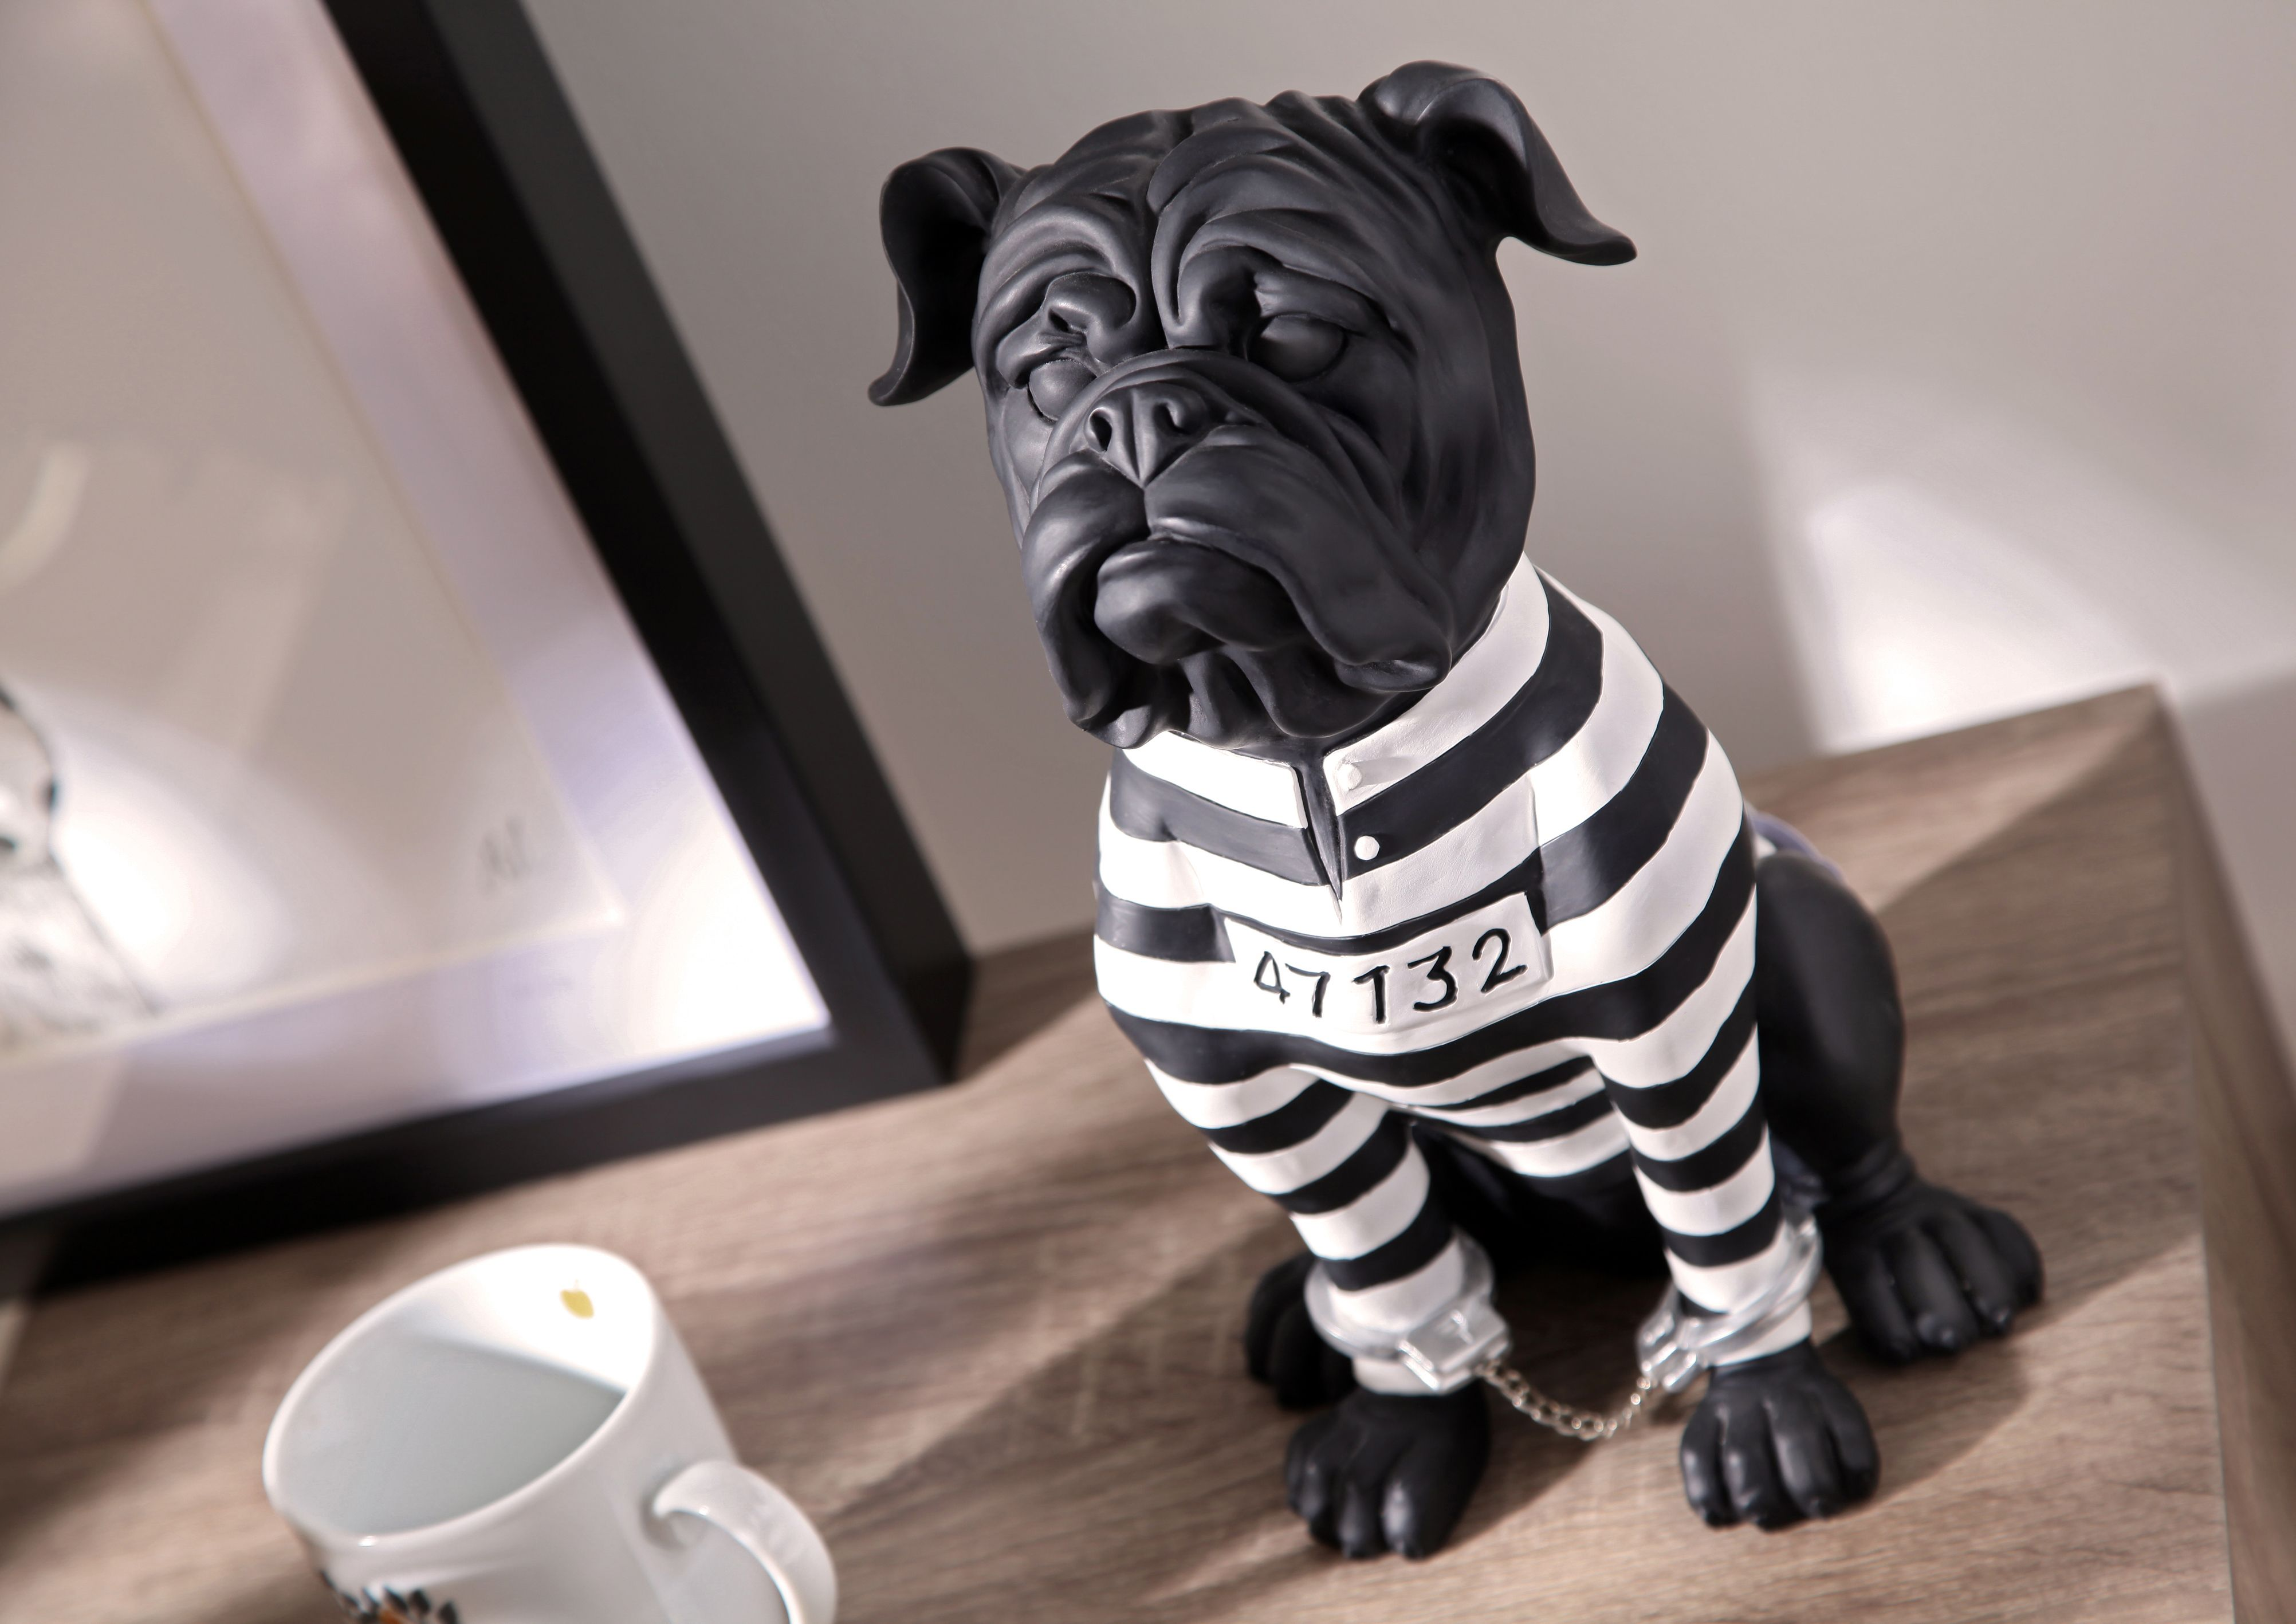 D coration moderne design home chien prisonnier for Amadeus decoration